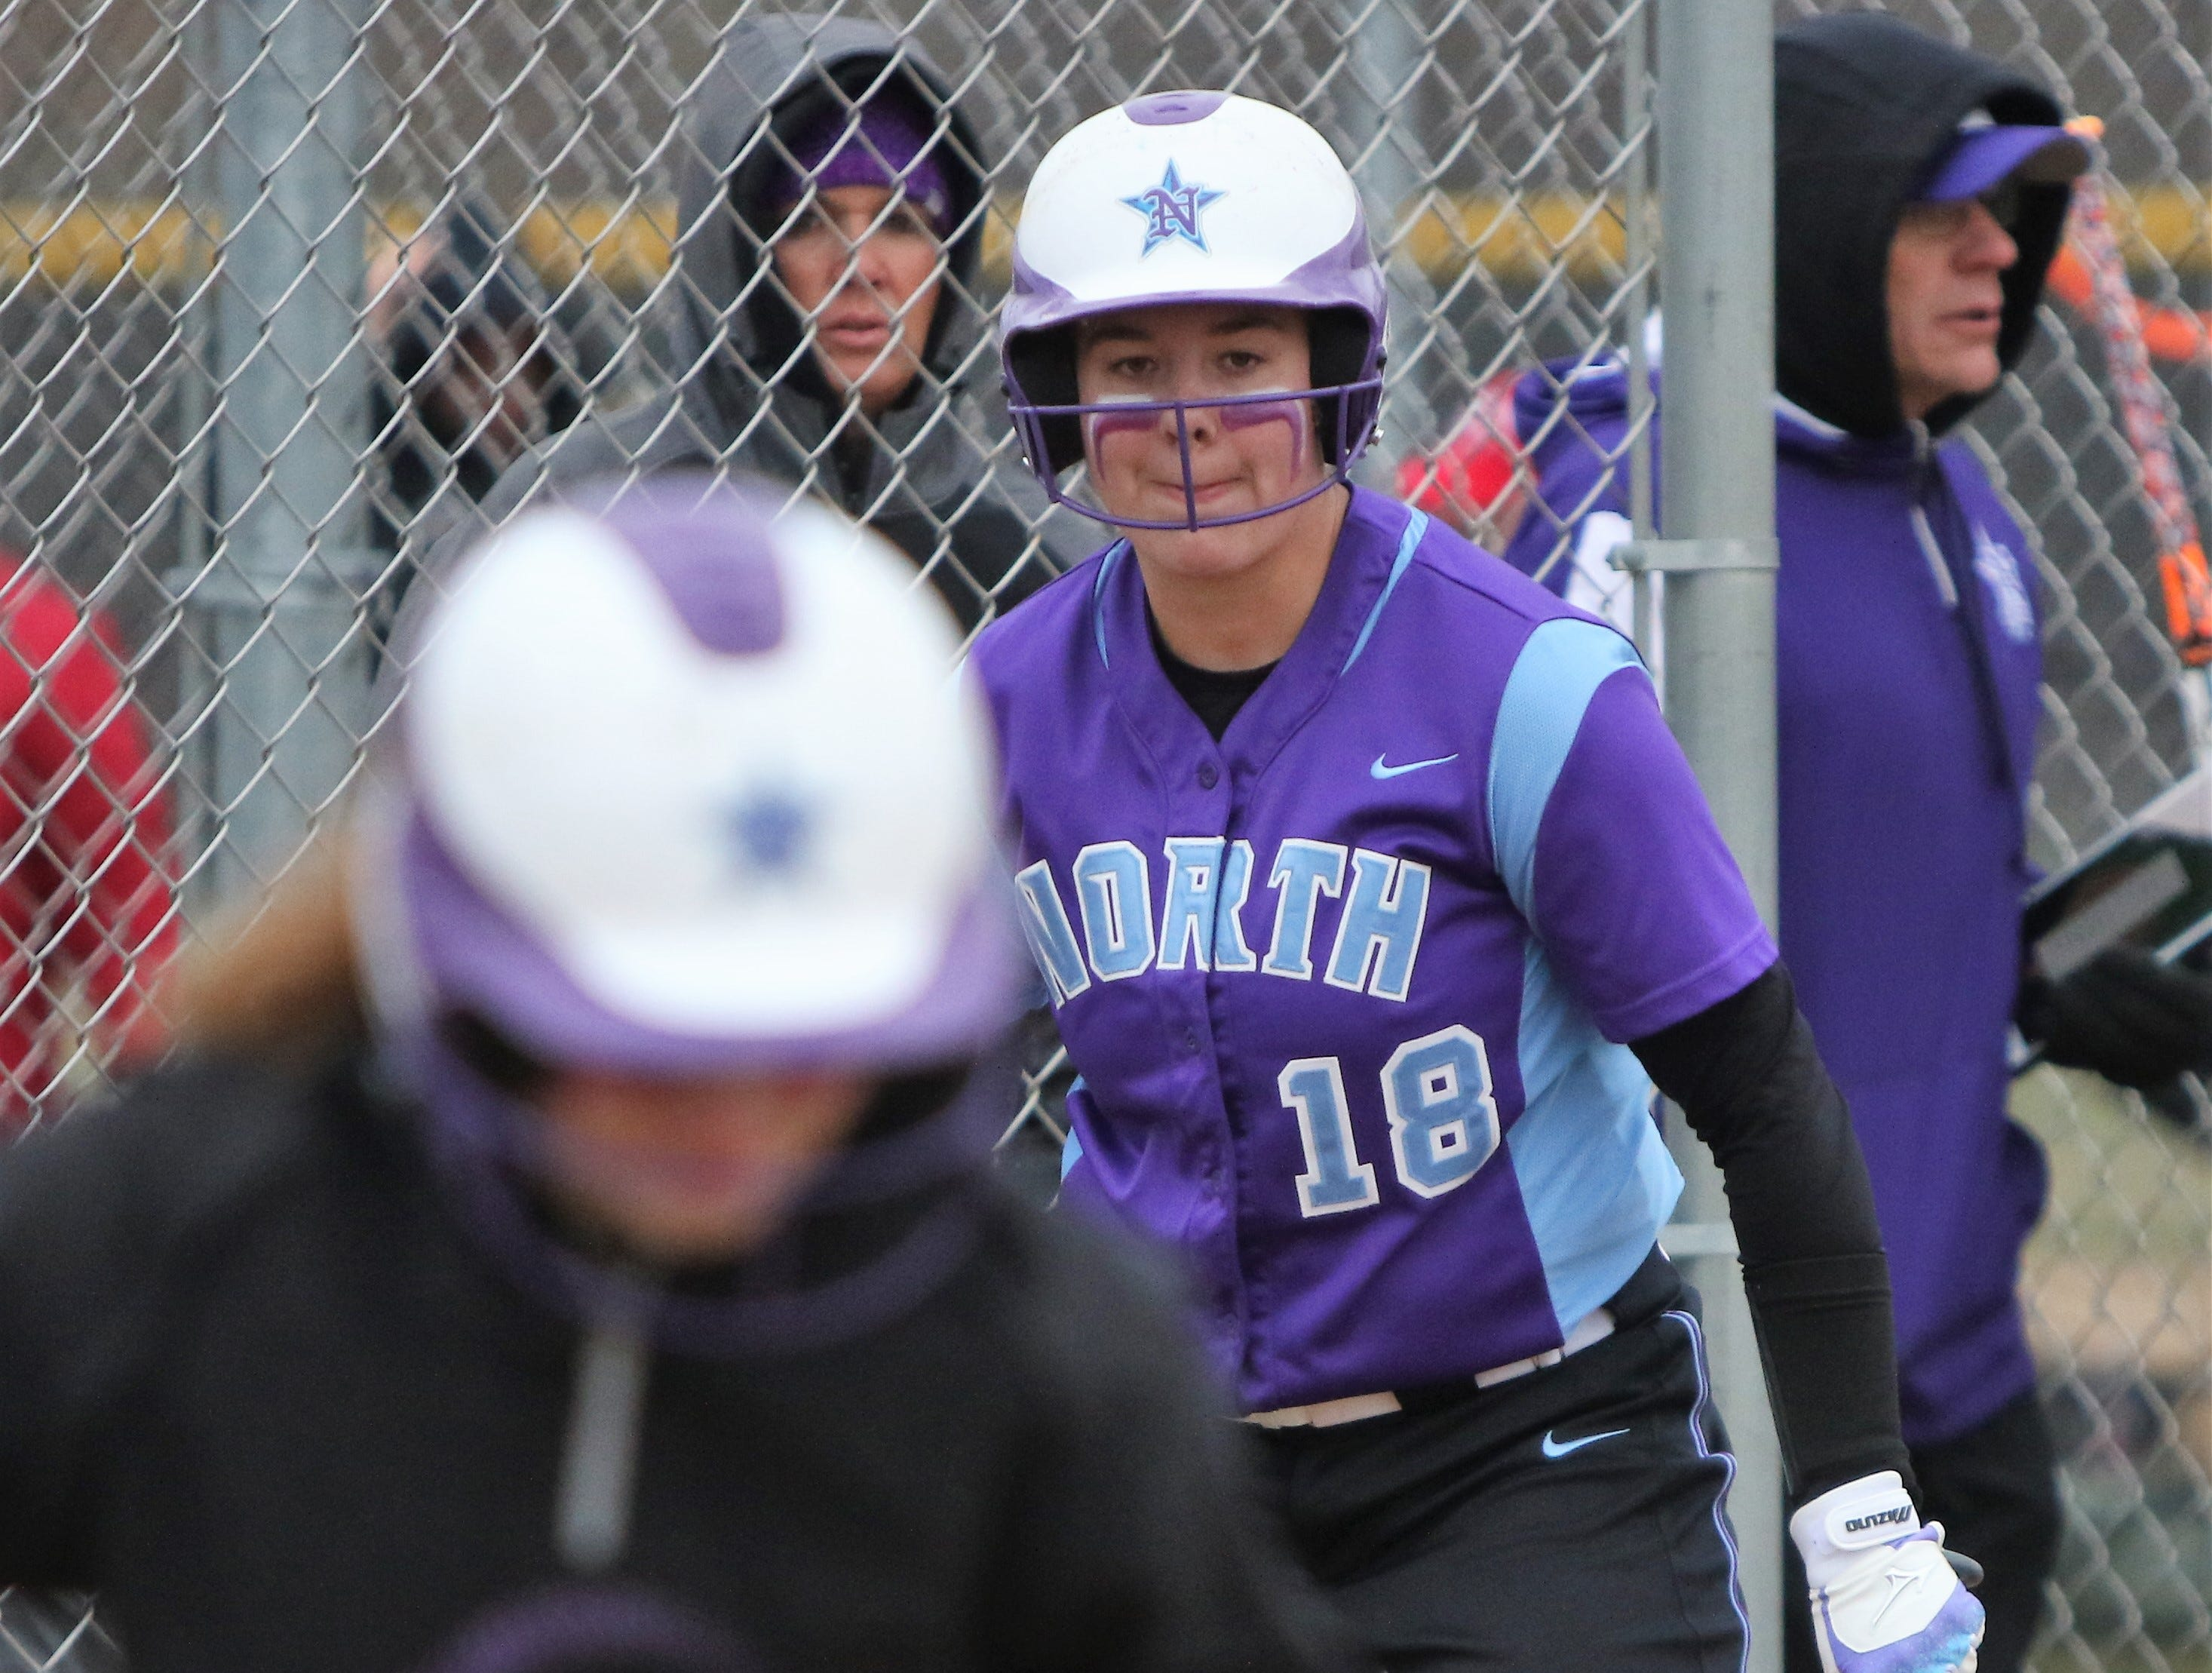 Waukesha North senior Maddy Anderson watches on from the on deck circle against Muskego on April 12, 2019.